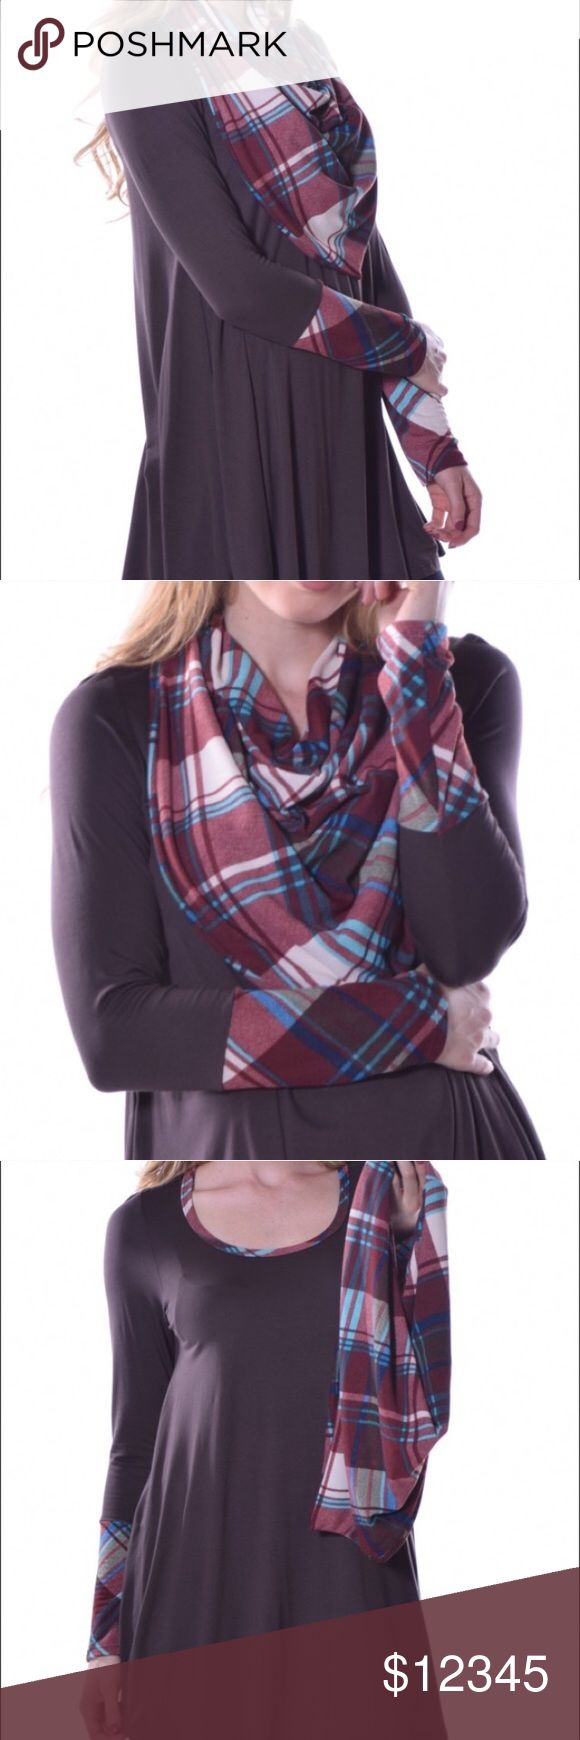 🎉✨COMING SOON!!✨🎉 🎉THESE ARE ON THEIR WAY!!🎉 👍🏽If you want to be notified when these arrive please COMMENT a 👍🏽thumbs up emoji. ✨Plaid sleeve tunic + infinity scarf combo. ✨6 combos available. ✨Sizes: 1 small 2 medium 2 large 1x-large. ✨95% viscose 5 spandex. ✨Tunic: BROWN. ✨PRICE: Surprise😉 🚫❌NO TRADING. NO RESERVING.❌🚫 ✨Happy to answer any questions you have!🎉 Pastels Clothing Other